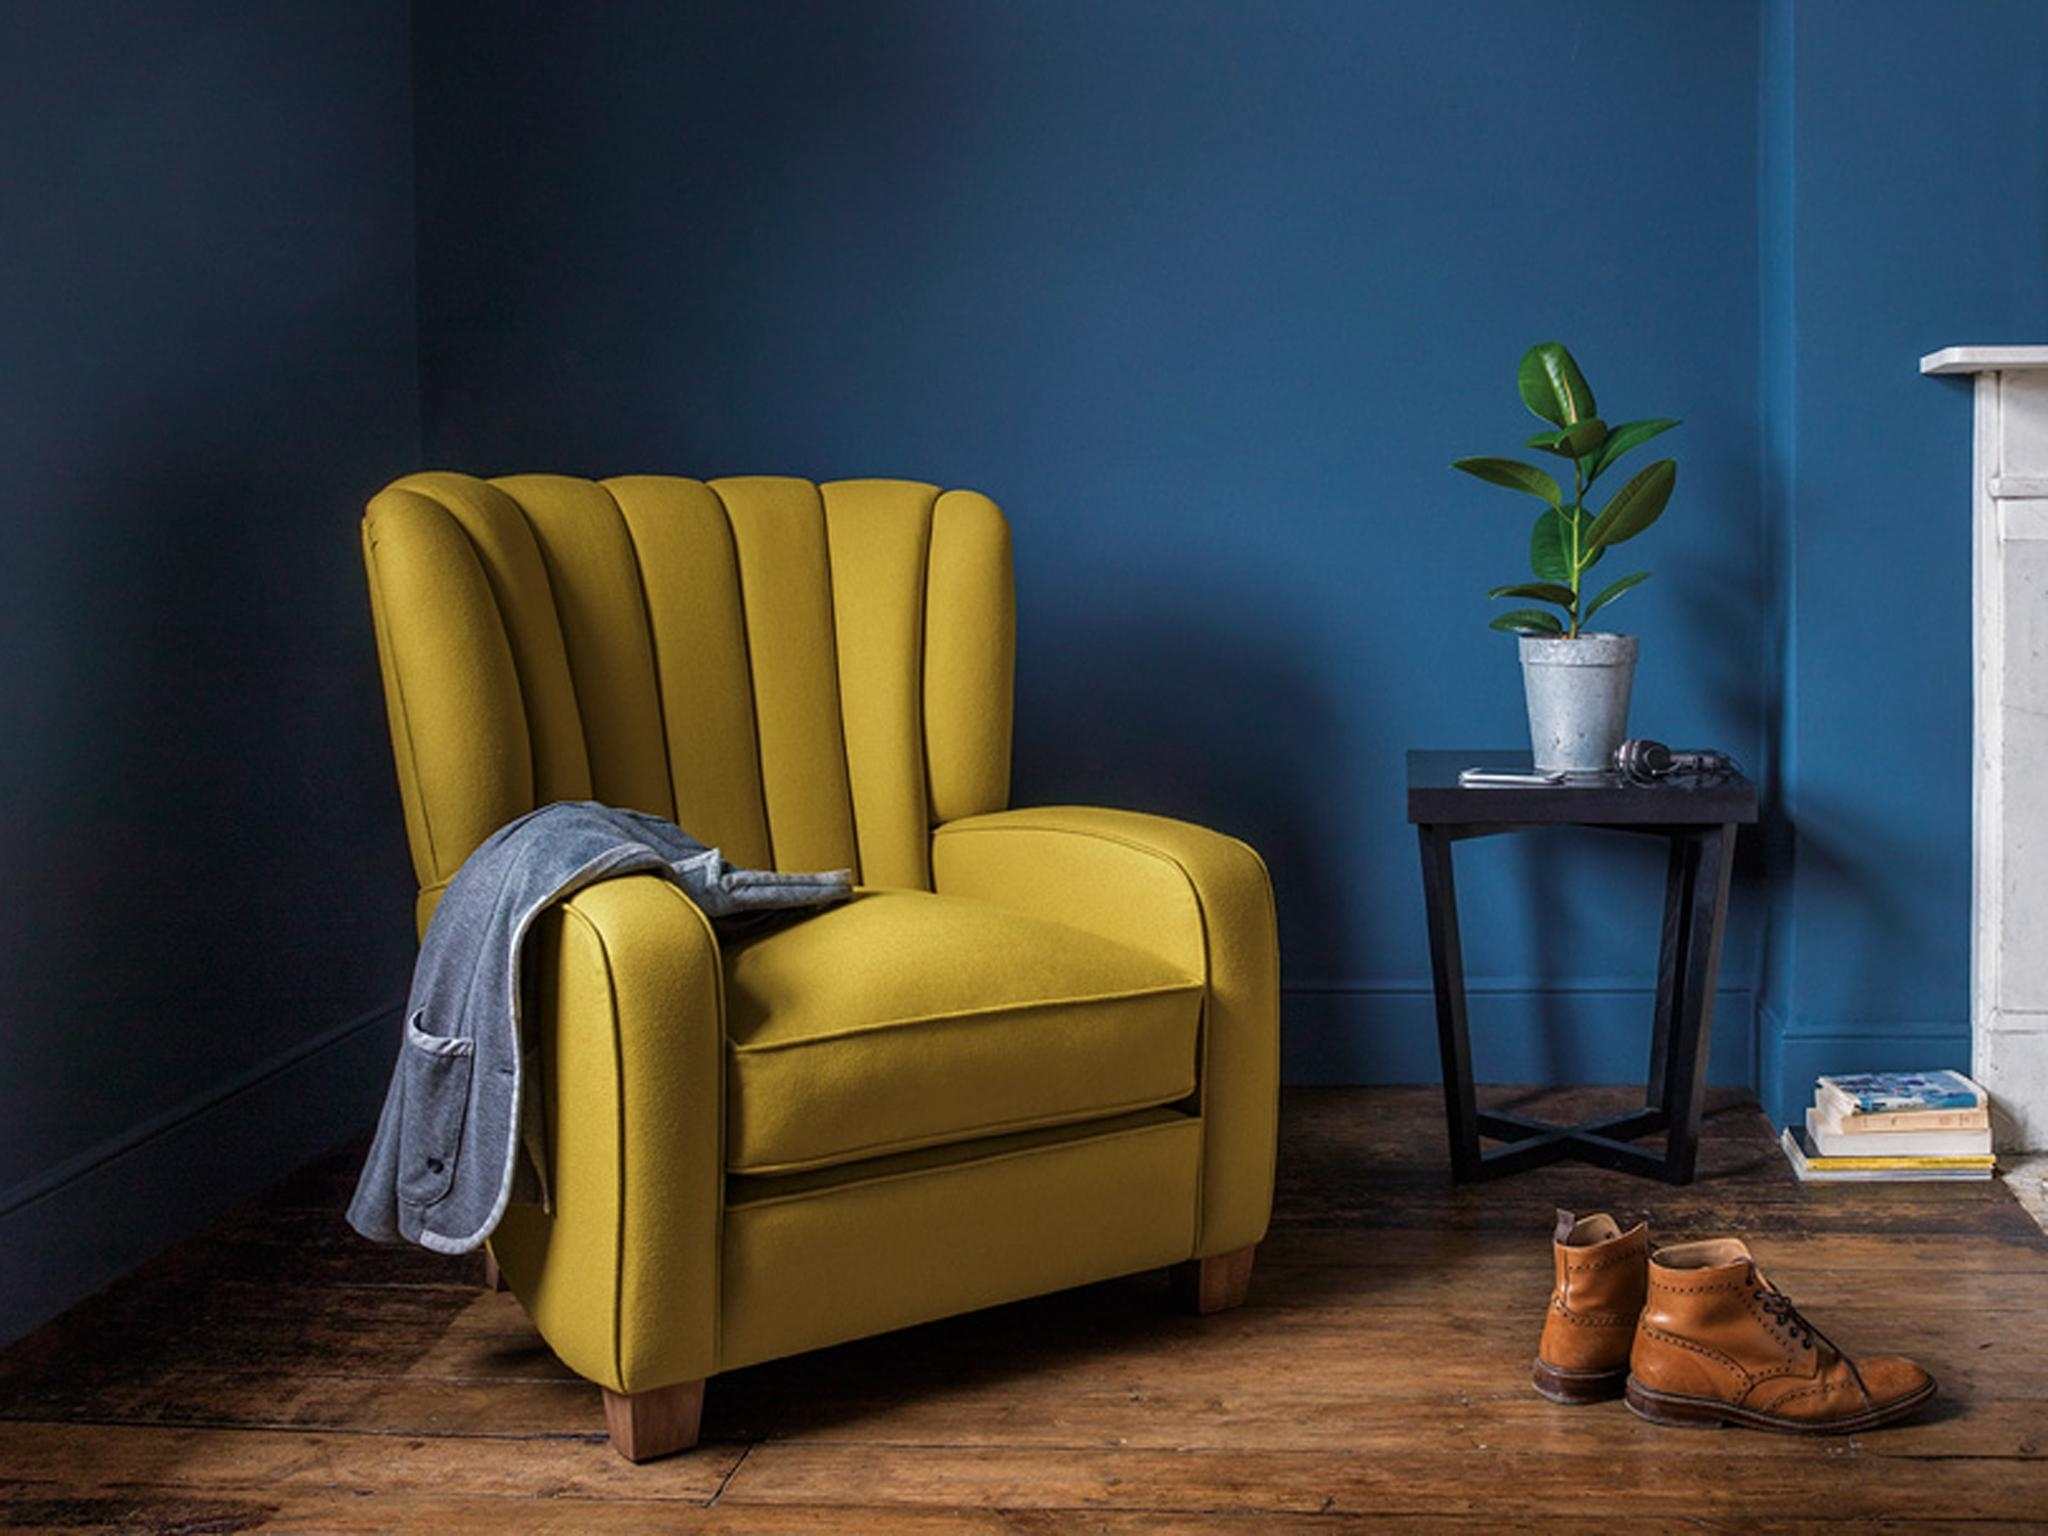 Heel Chair Sofas With Trendy Chairs : Heel Chair Sofas Uncommon Heel Chair Sofas' Refreshing (View 10 of 15)